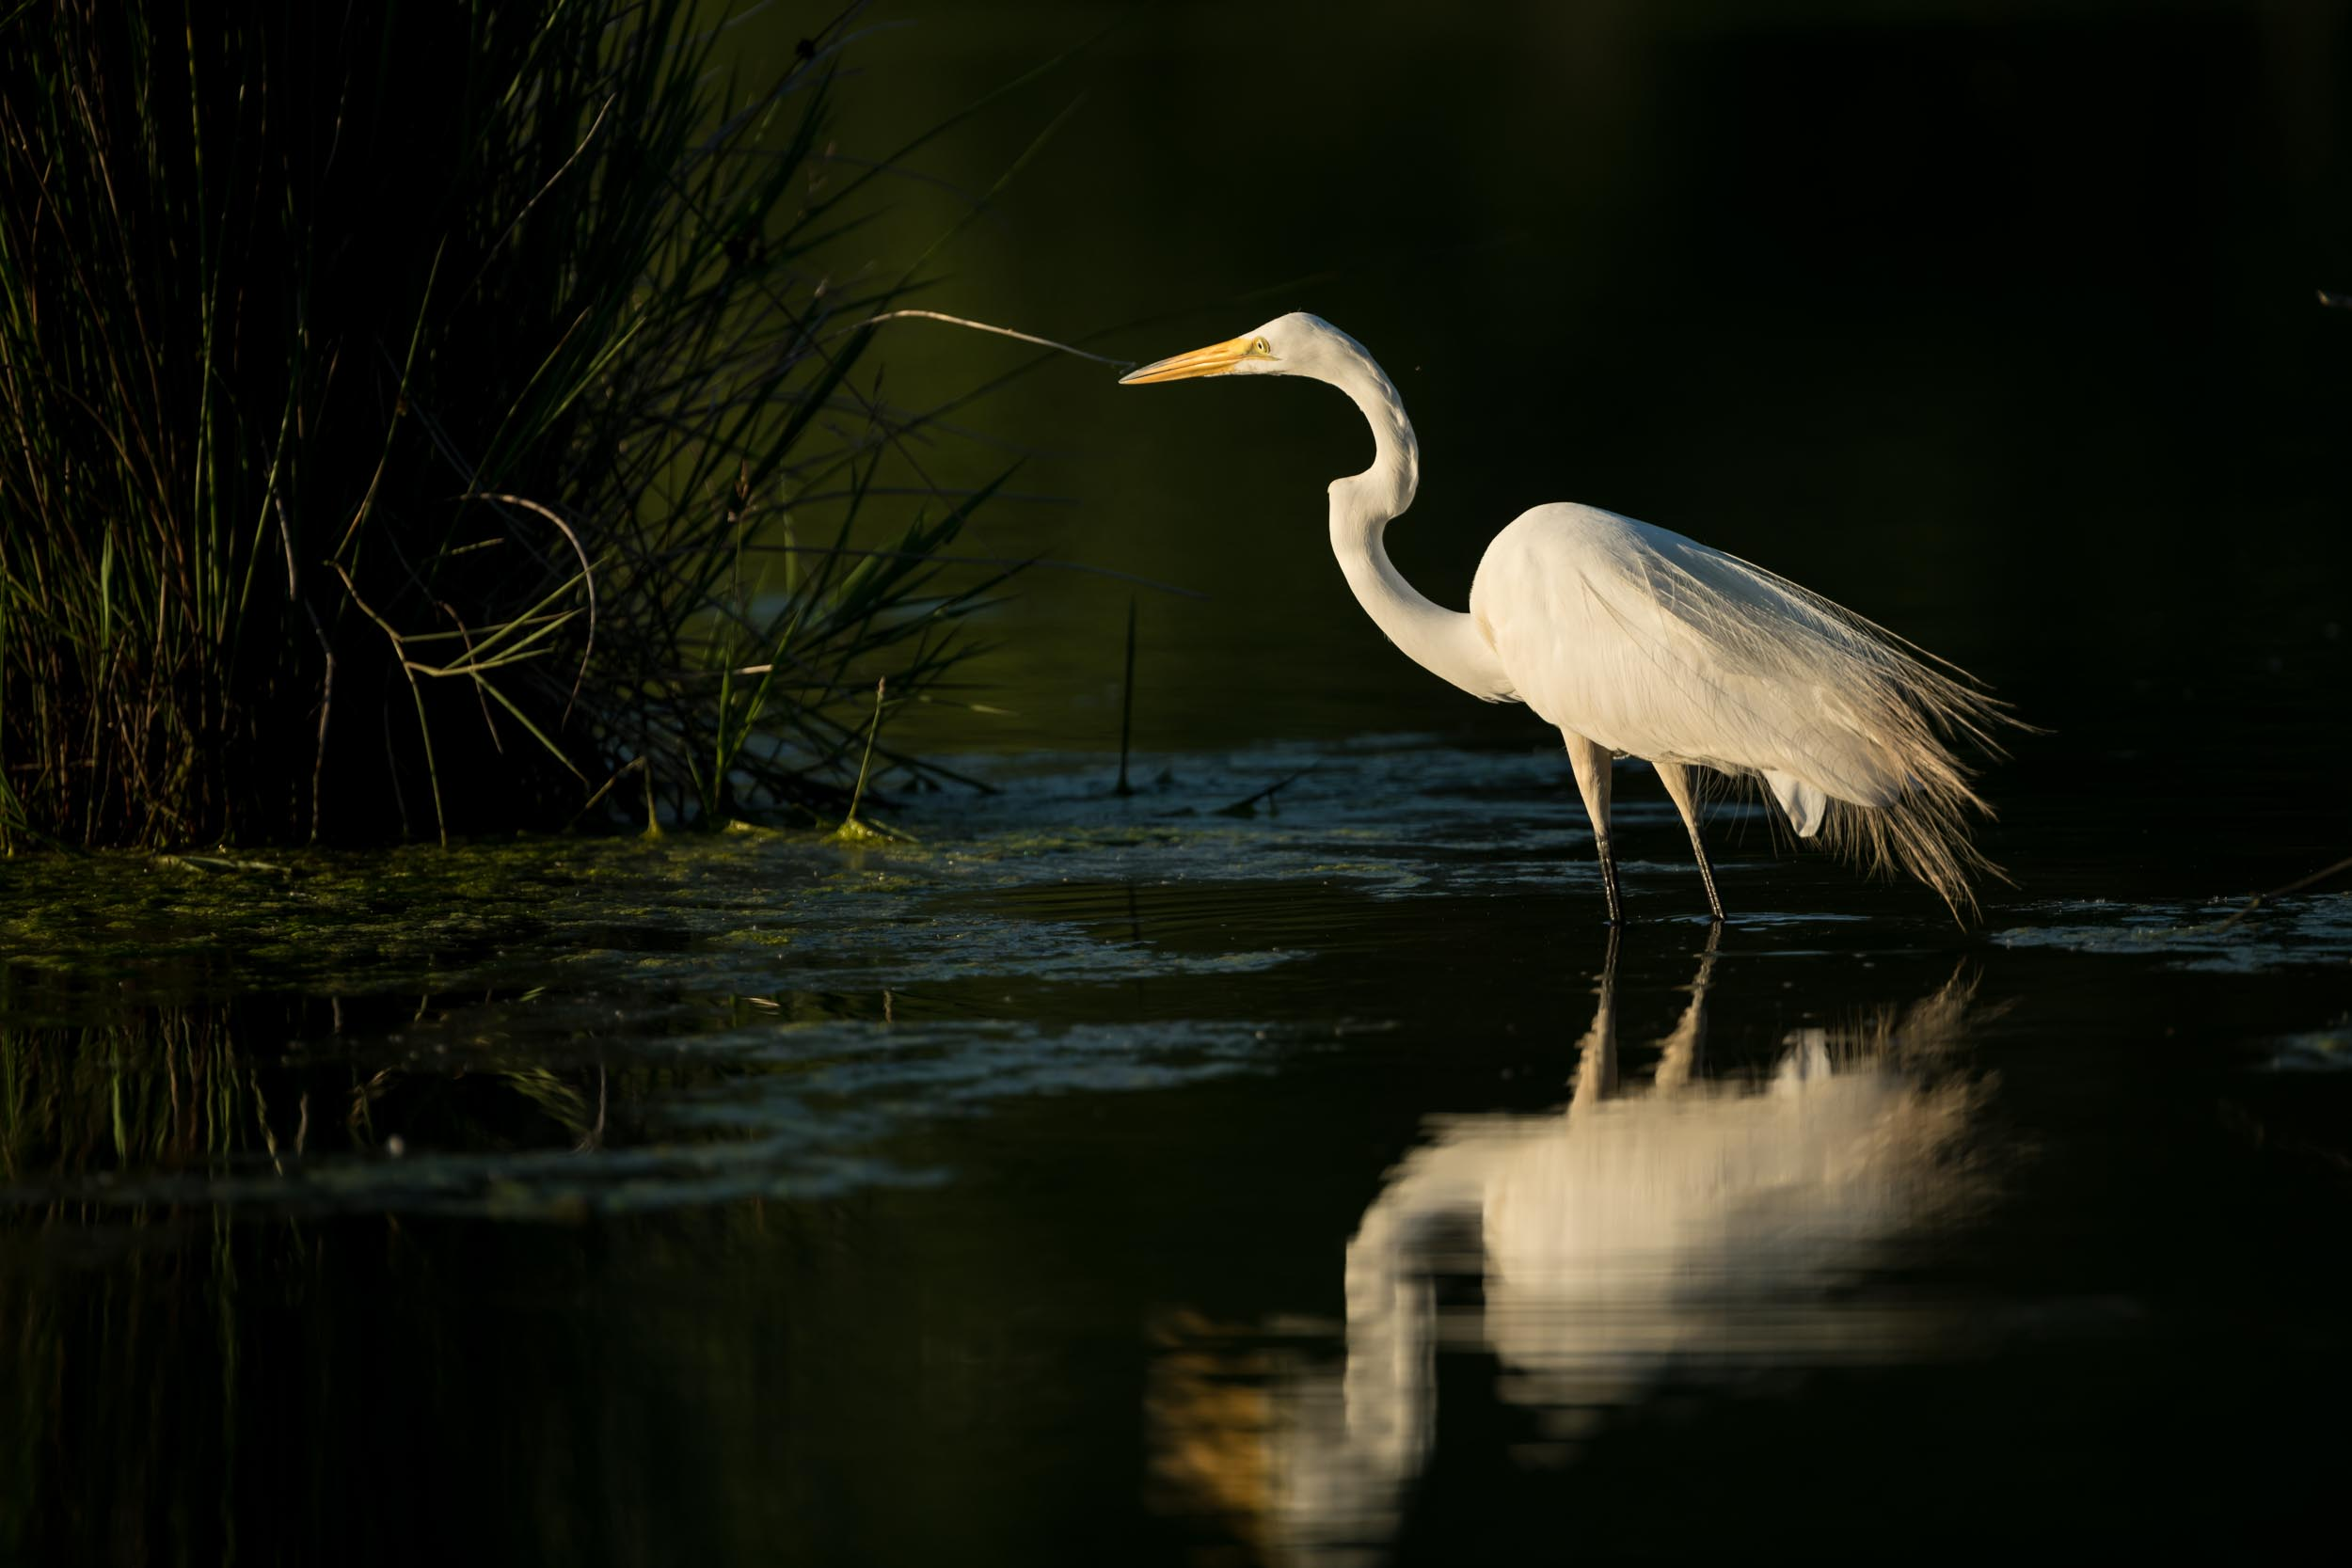 Great Egret Fishing–From the May 2019 Photo Tour